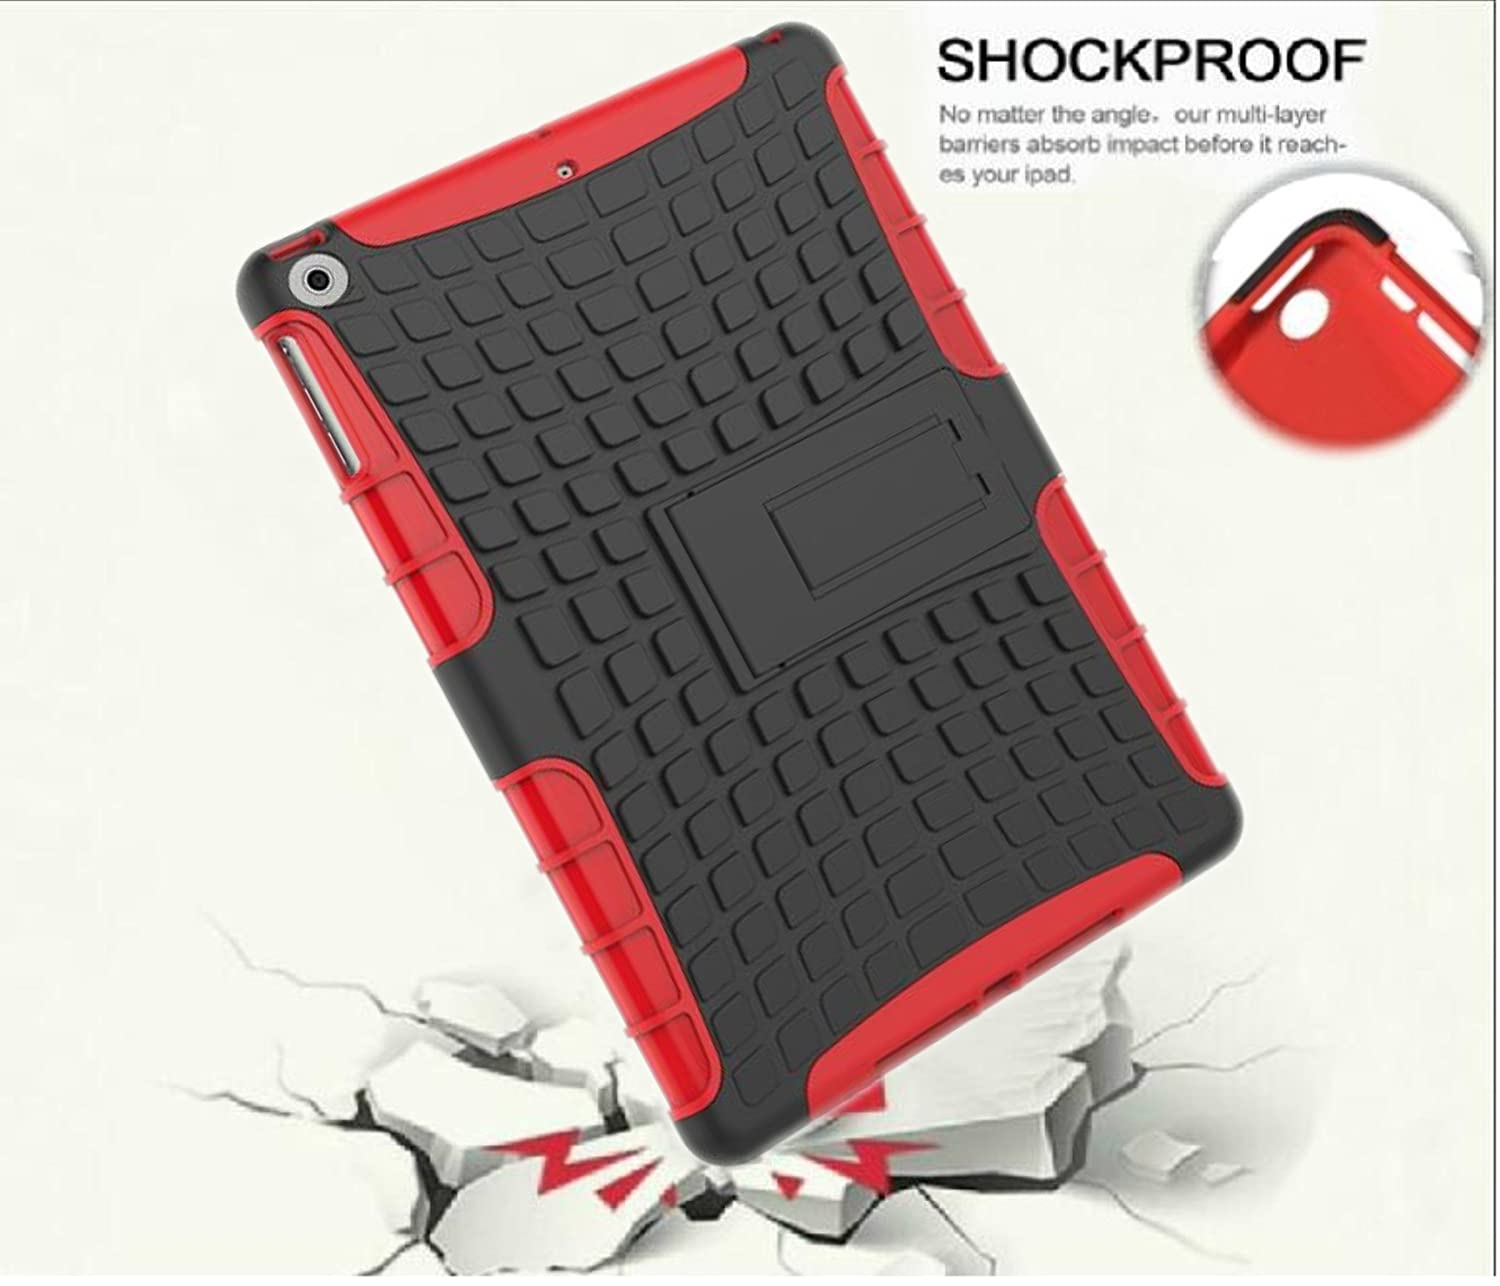 Protective Heavy Duty Tough 3 In 1 TPU PC Design Holder Case Cover For Apple ipad 2nd 3rd 4th Generation Model A1395 A1396 A1397 A1416 A1430 A1403 A1458 A1460 A1459 16GB 32GB 64GB Black//Black